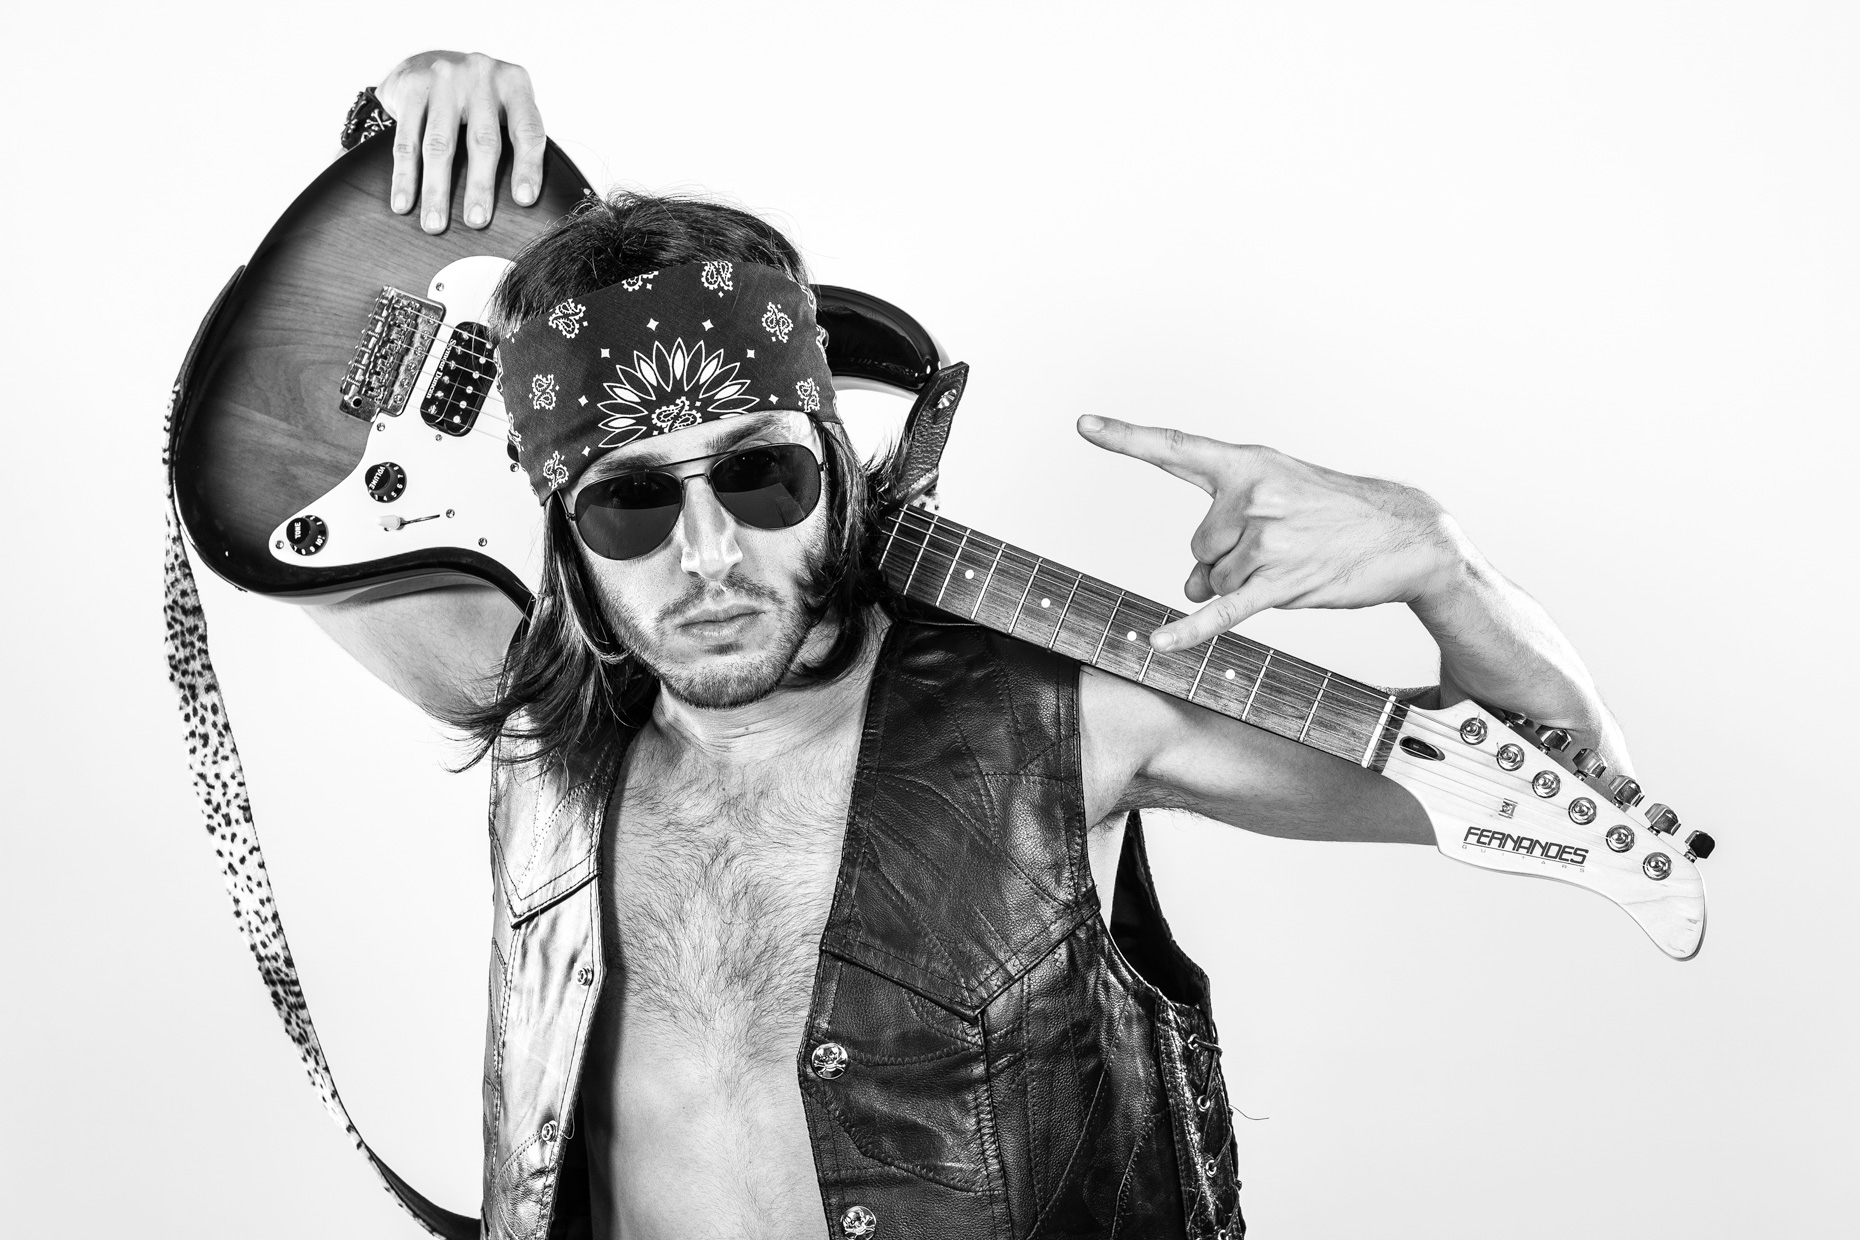 Guitar Hero Rock Star by photographer Kevin Brown